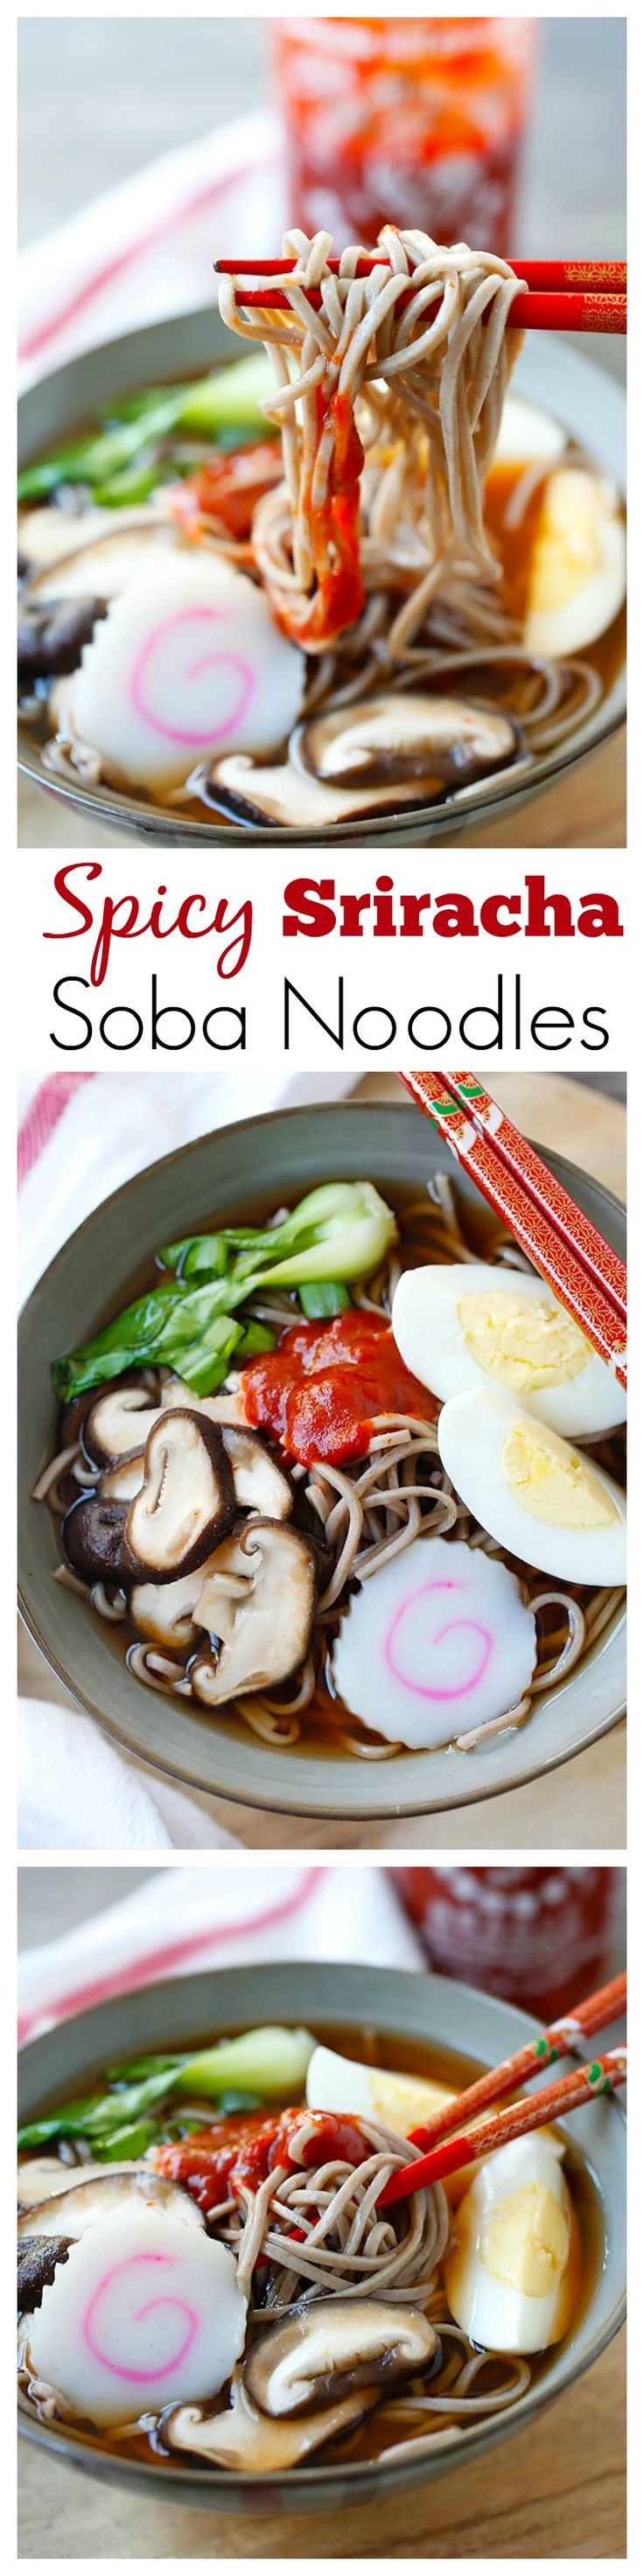 Spicy Sriracha Soba Noodle Soup – the easiest & most delicious noodle soup ever, with spicy Sriracha added to the broth and takes only 15 mins | rasamalaysia.com